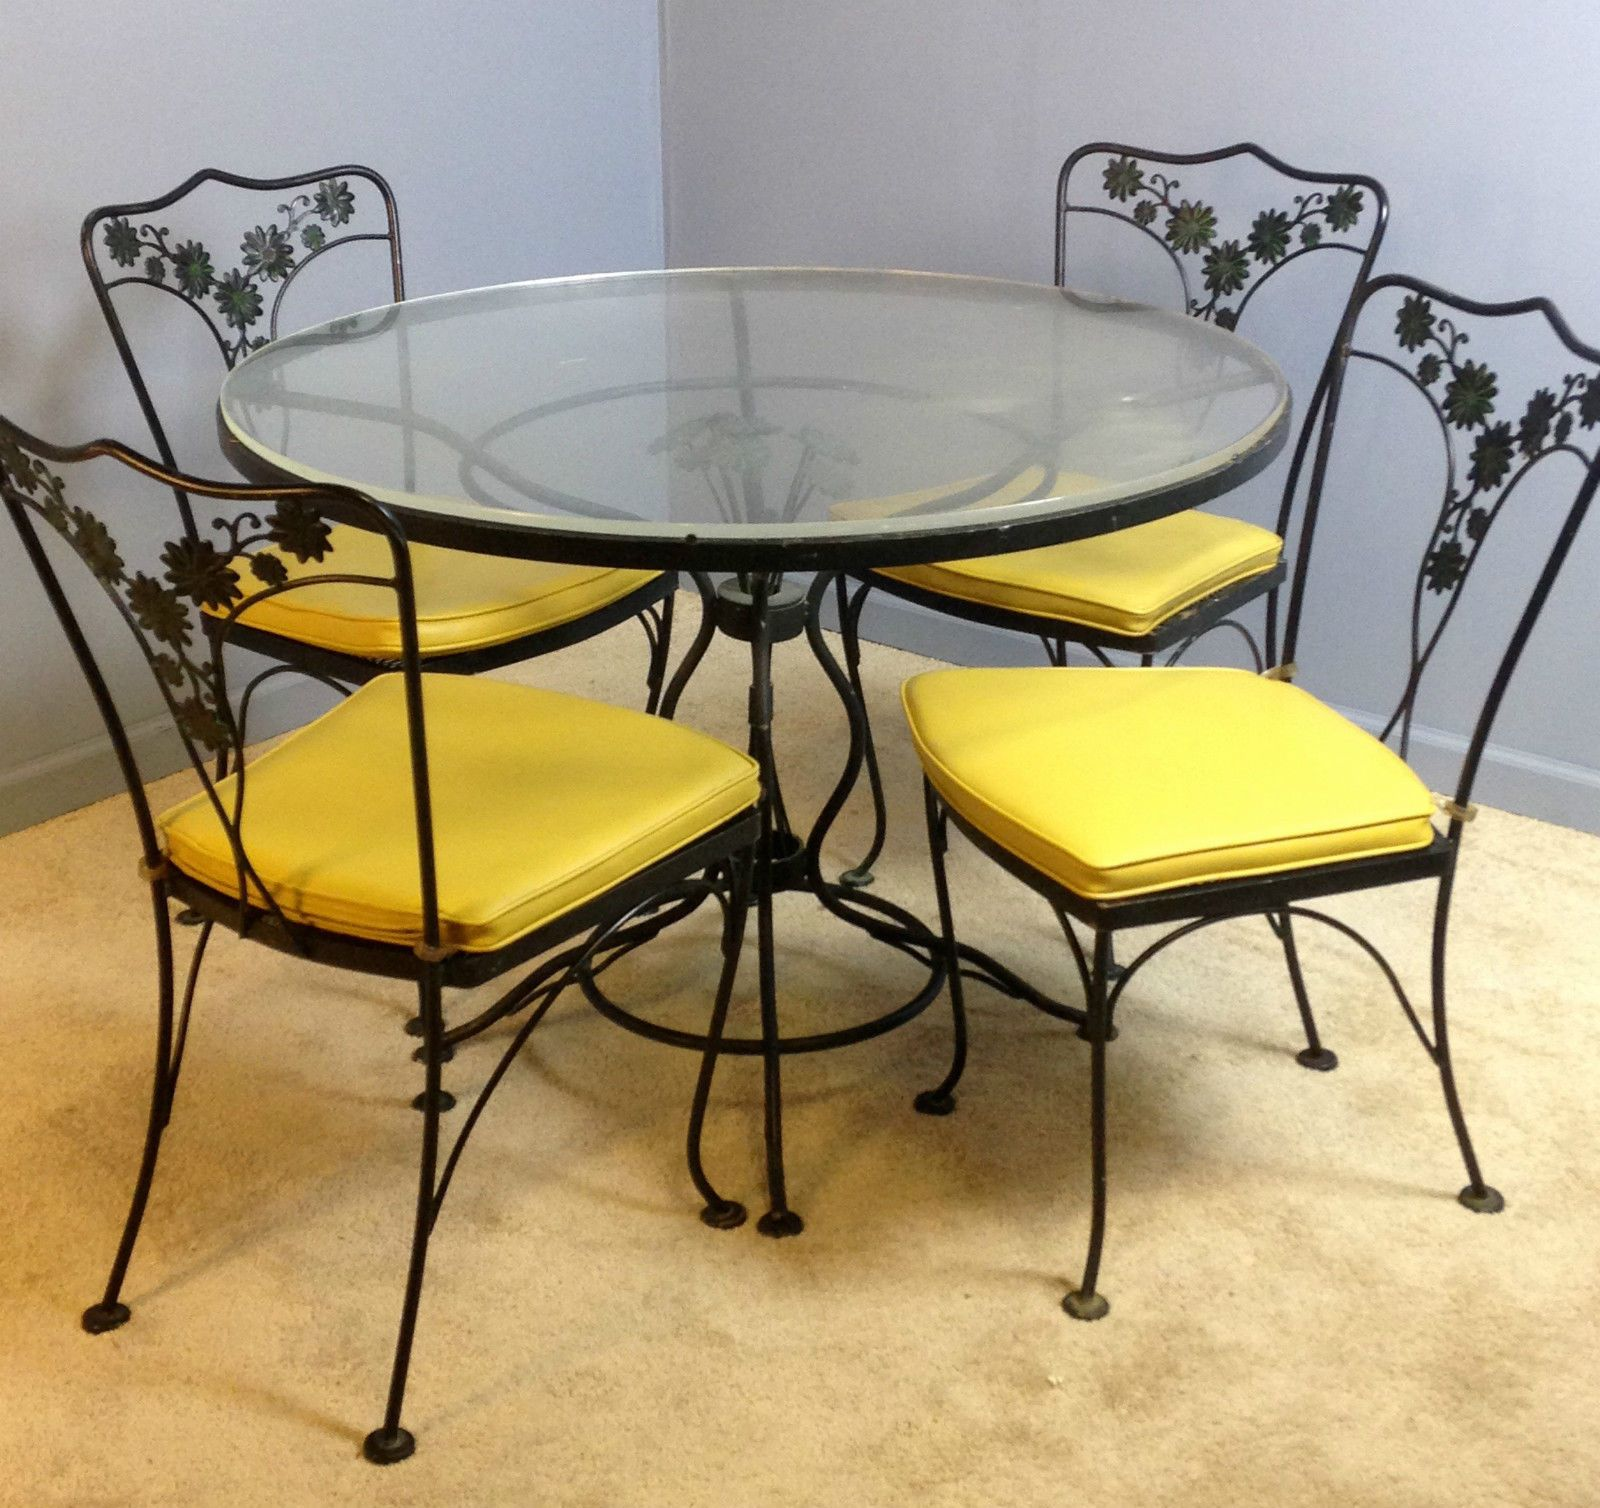 Genuine Woodard Patio Table Dinette Dining Chairs Set Vintage